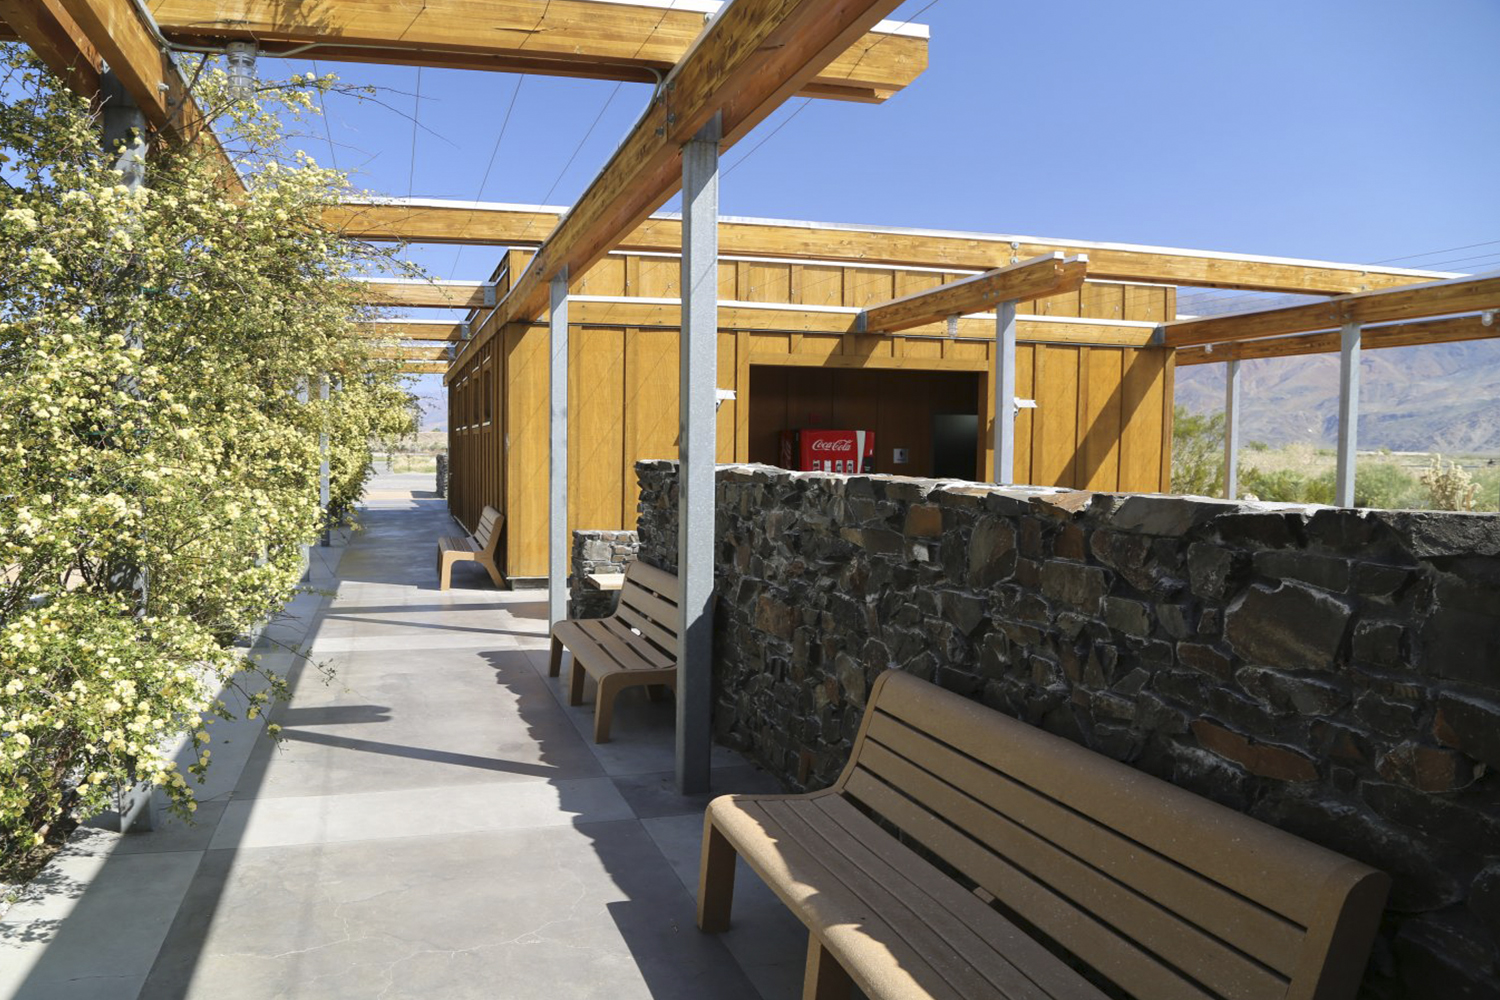 11_Projects_Eastern Sierra Inter-Agency Visitor Center.jpg